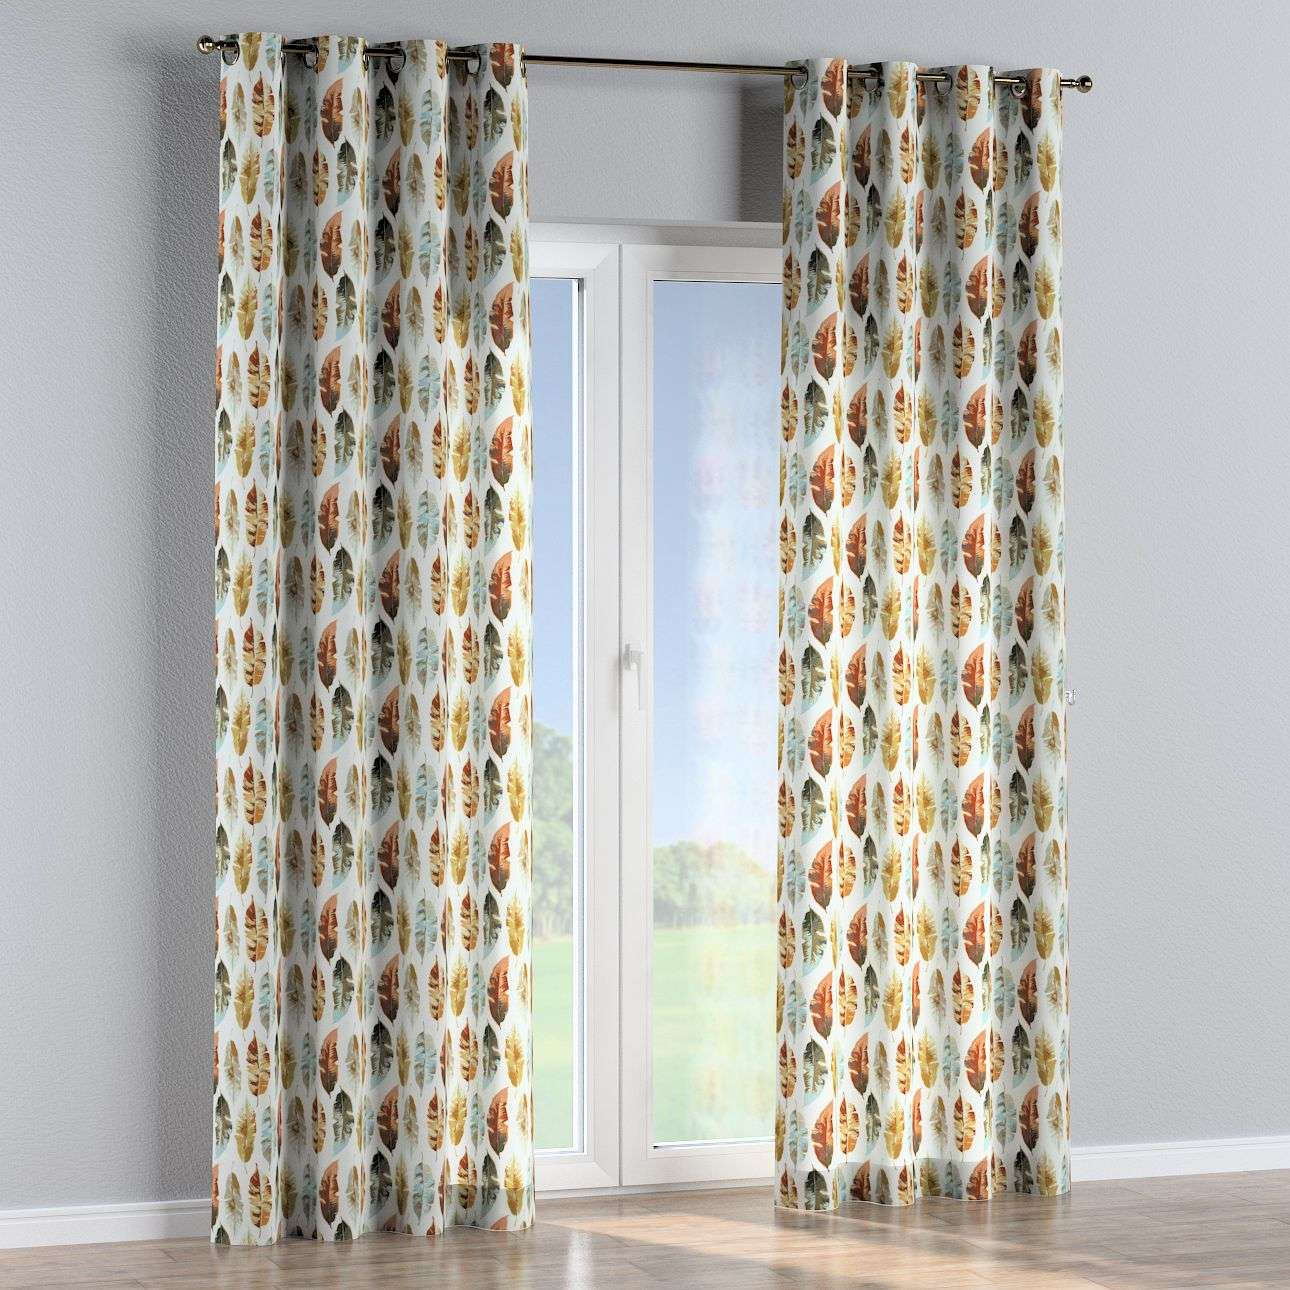 Eyelet curtains in collection Urban Jungle, fabric: 141-43